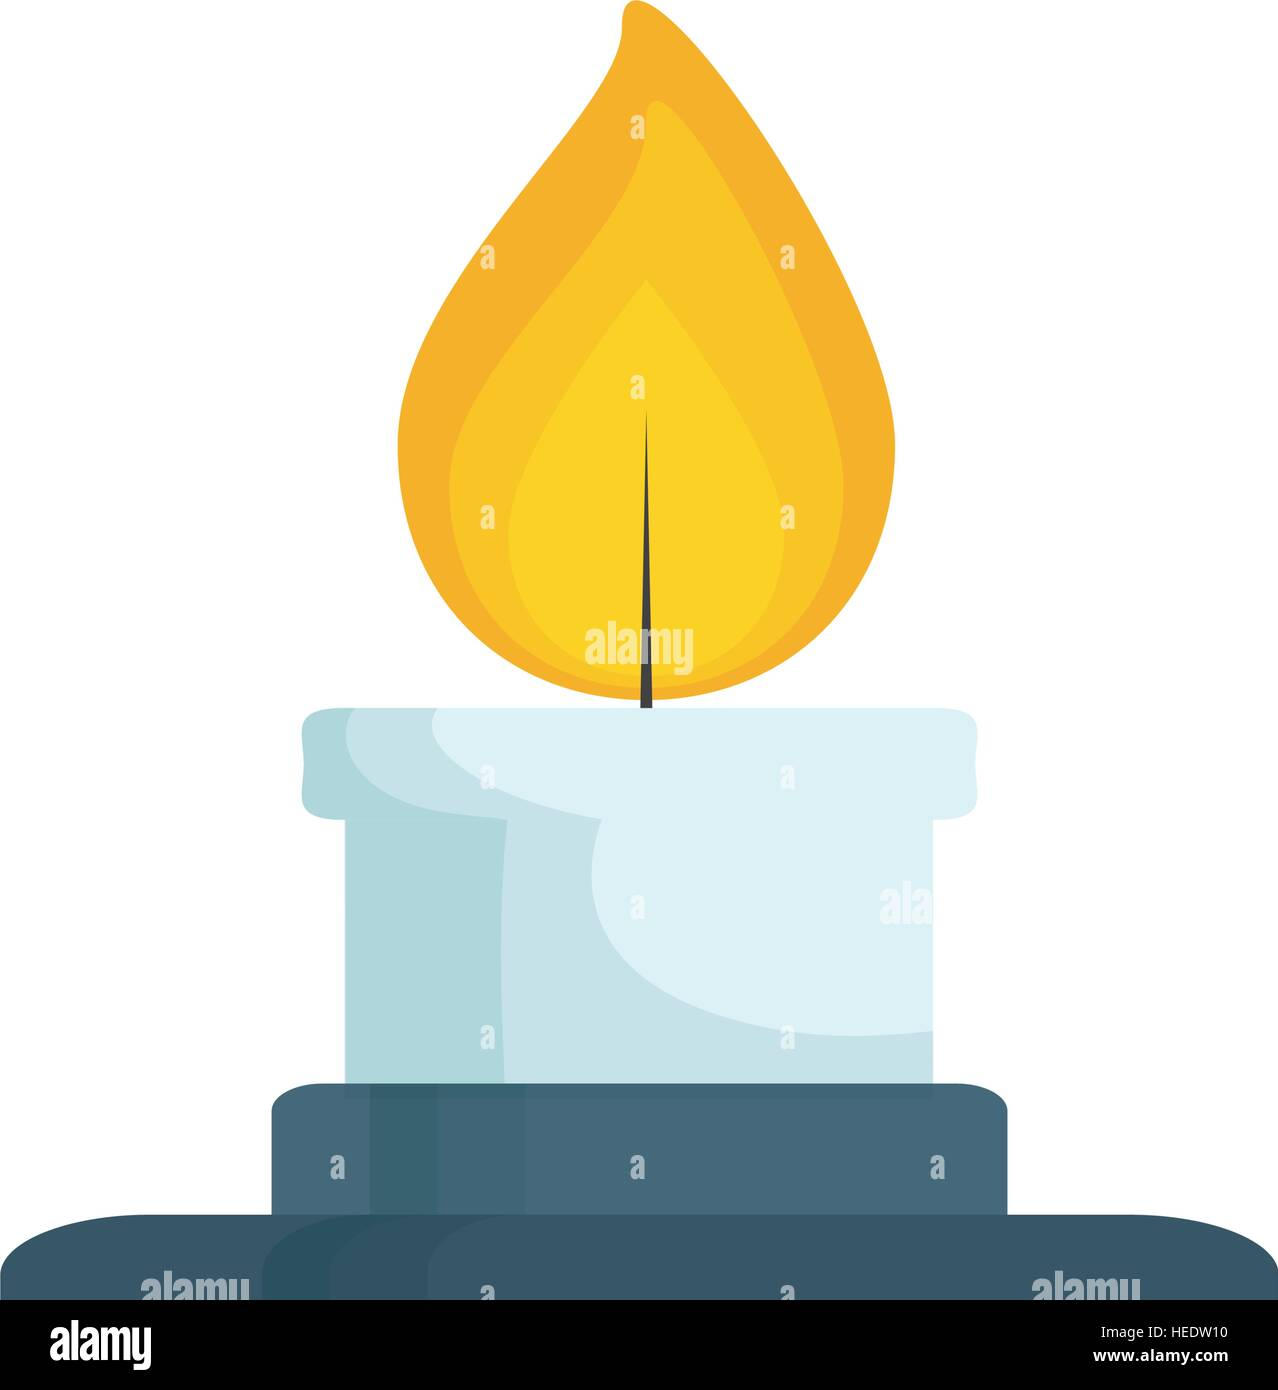 how to get a blue flame on a bunsen burner